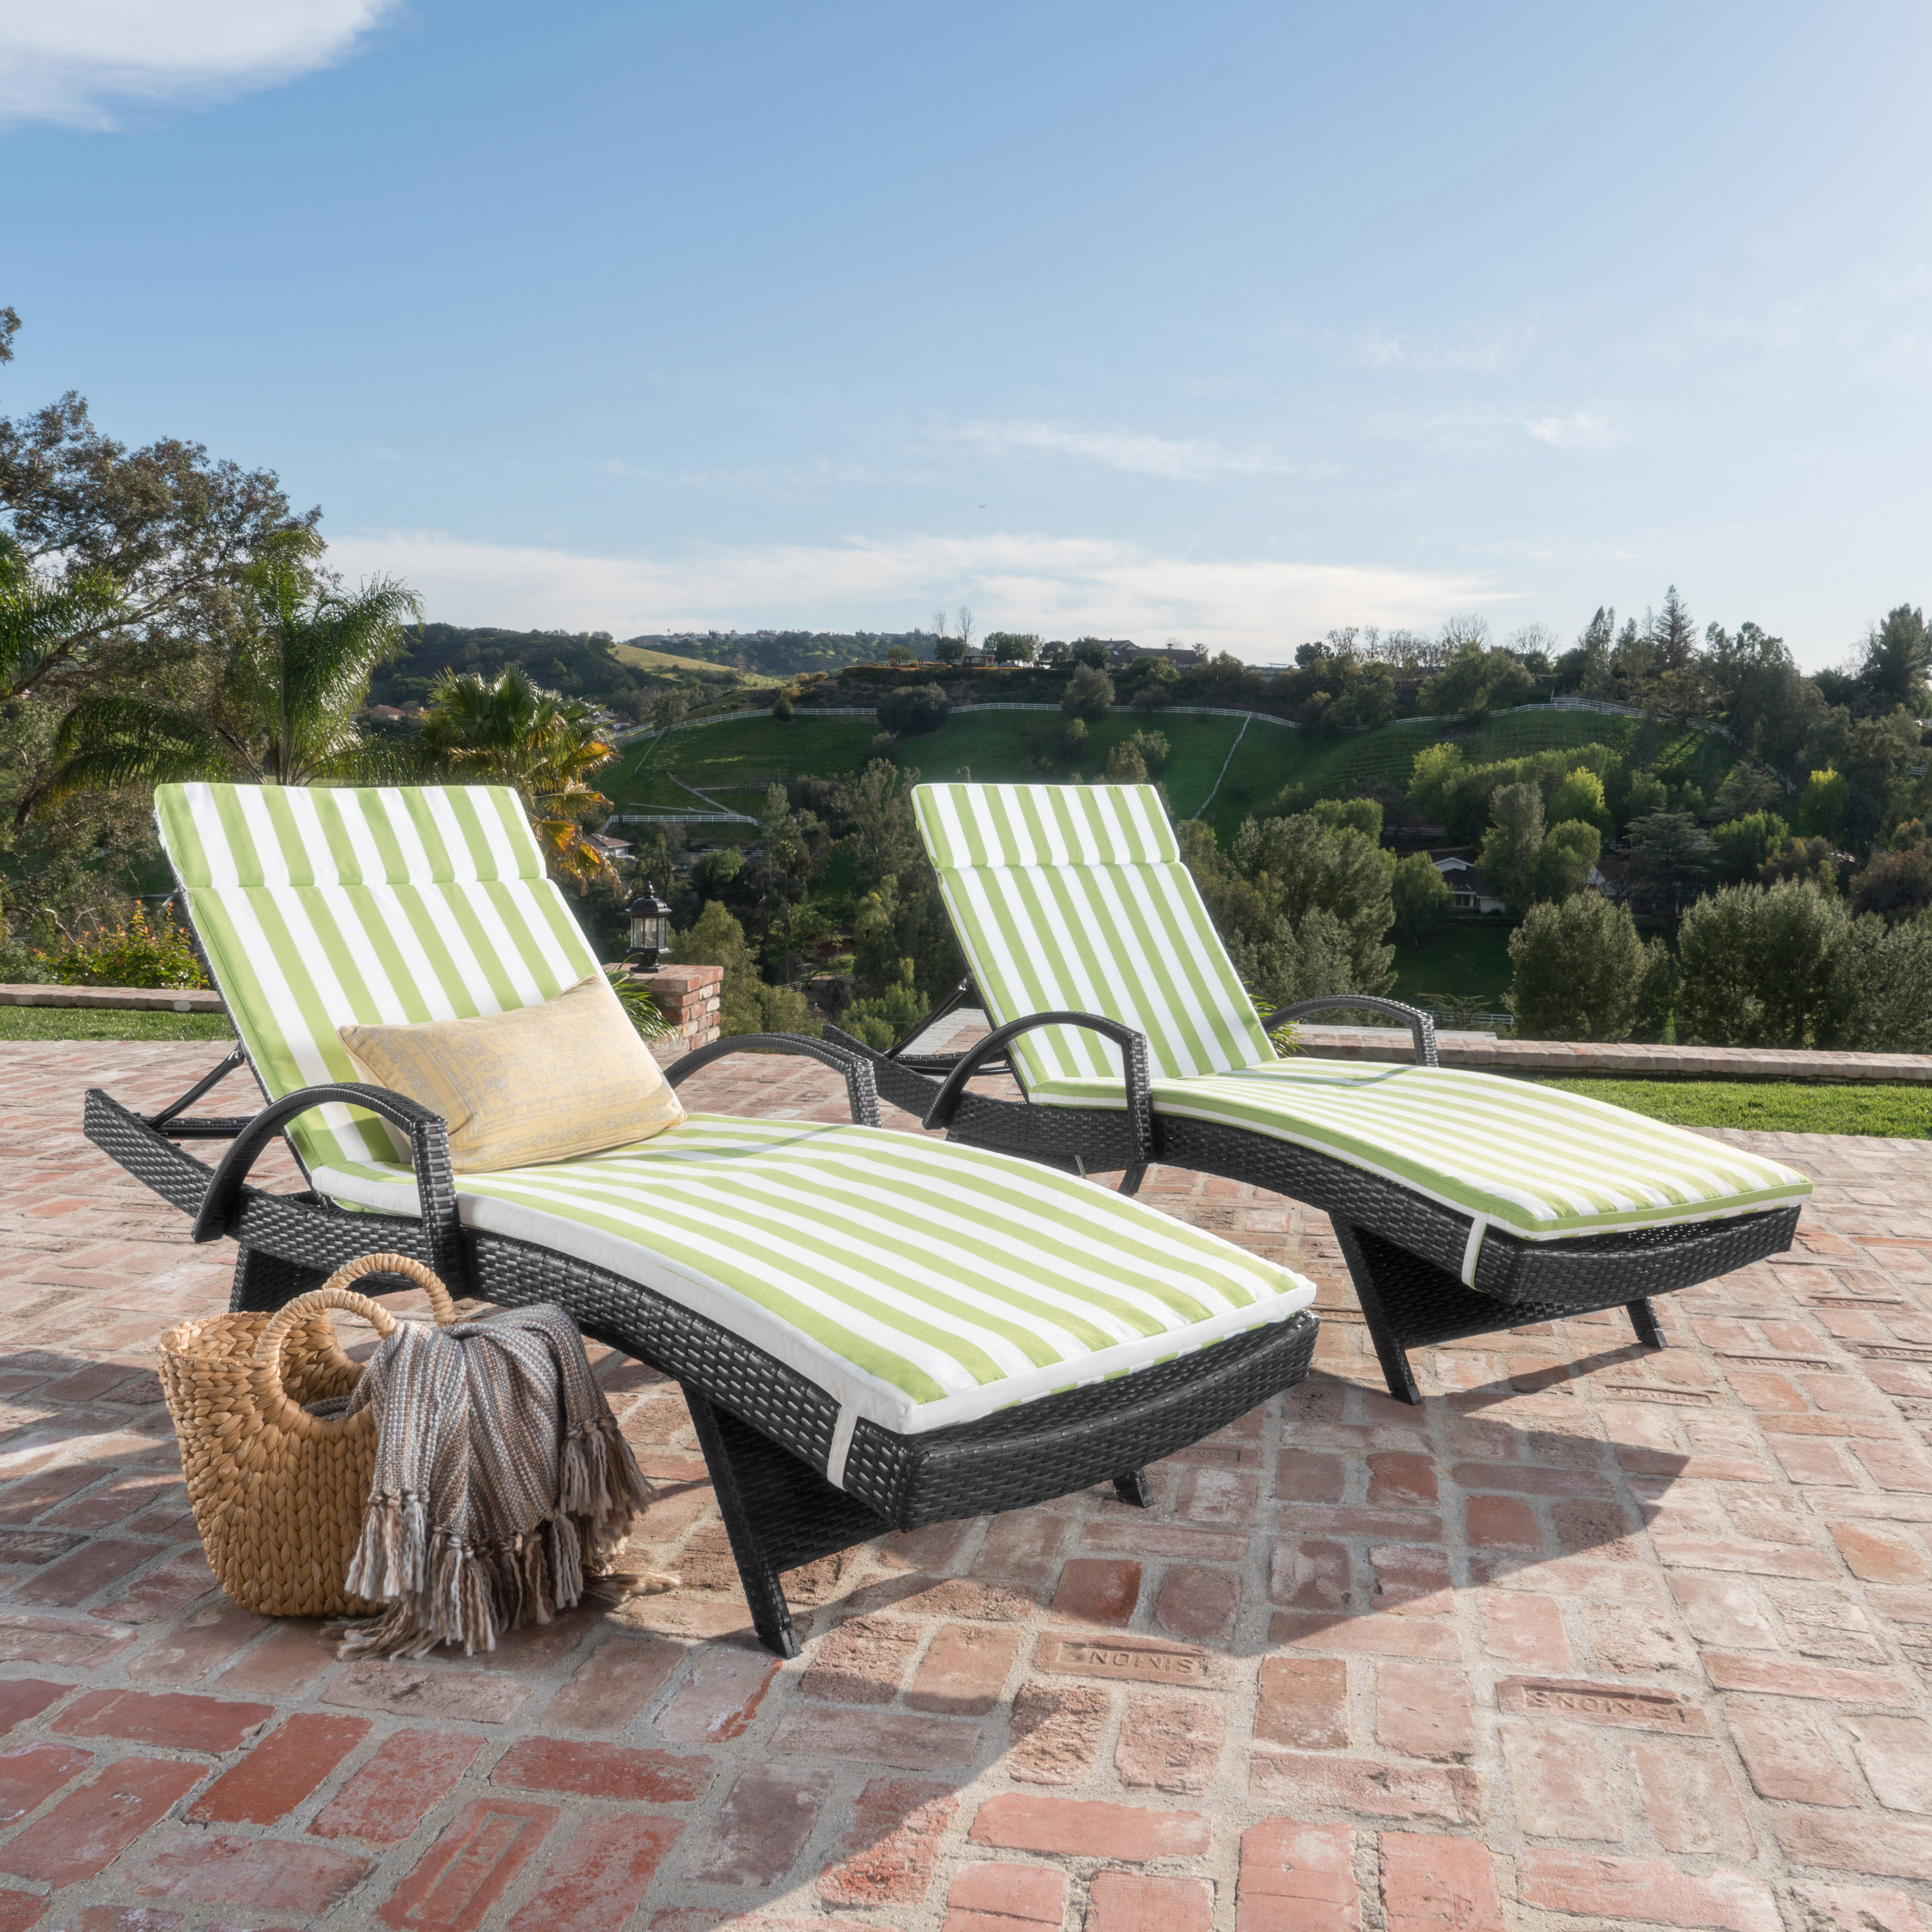 Soleil Outdoor Wicker Chaise Lounges w/ Water Resistant Cushions (Set of 2)